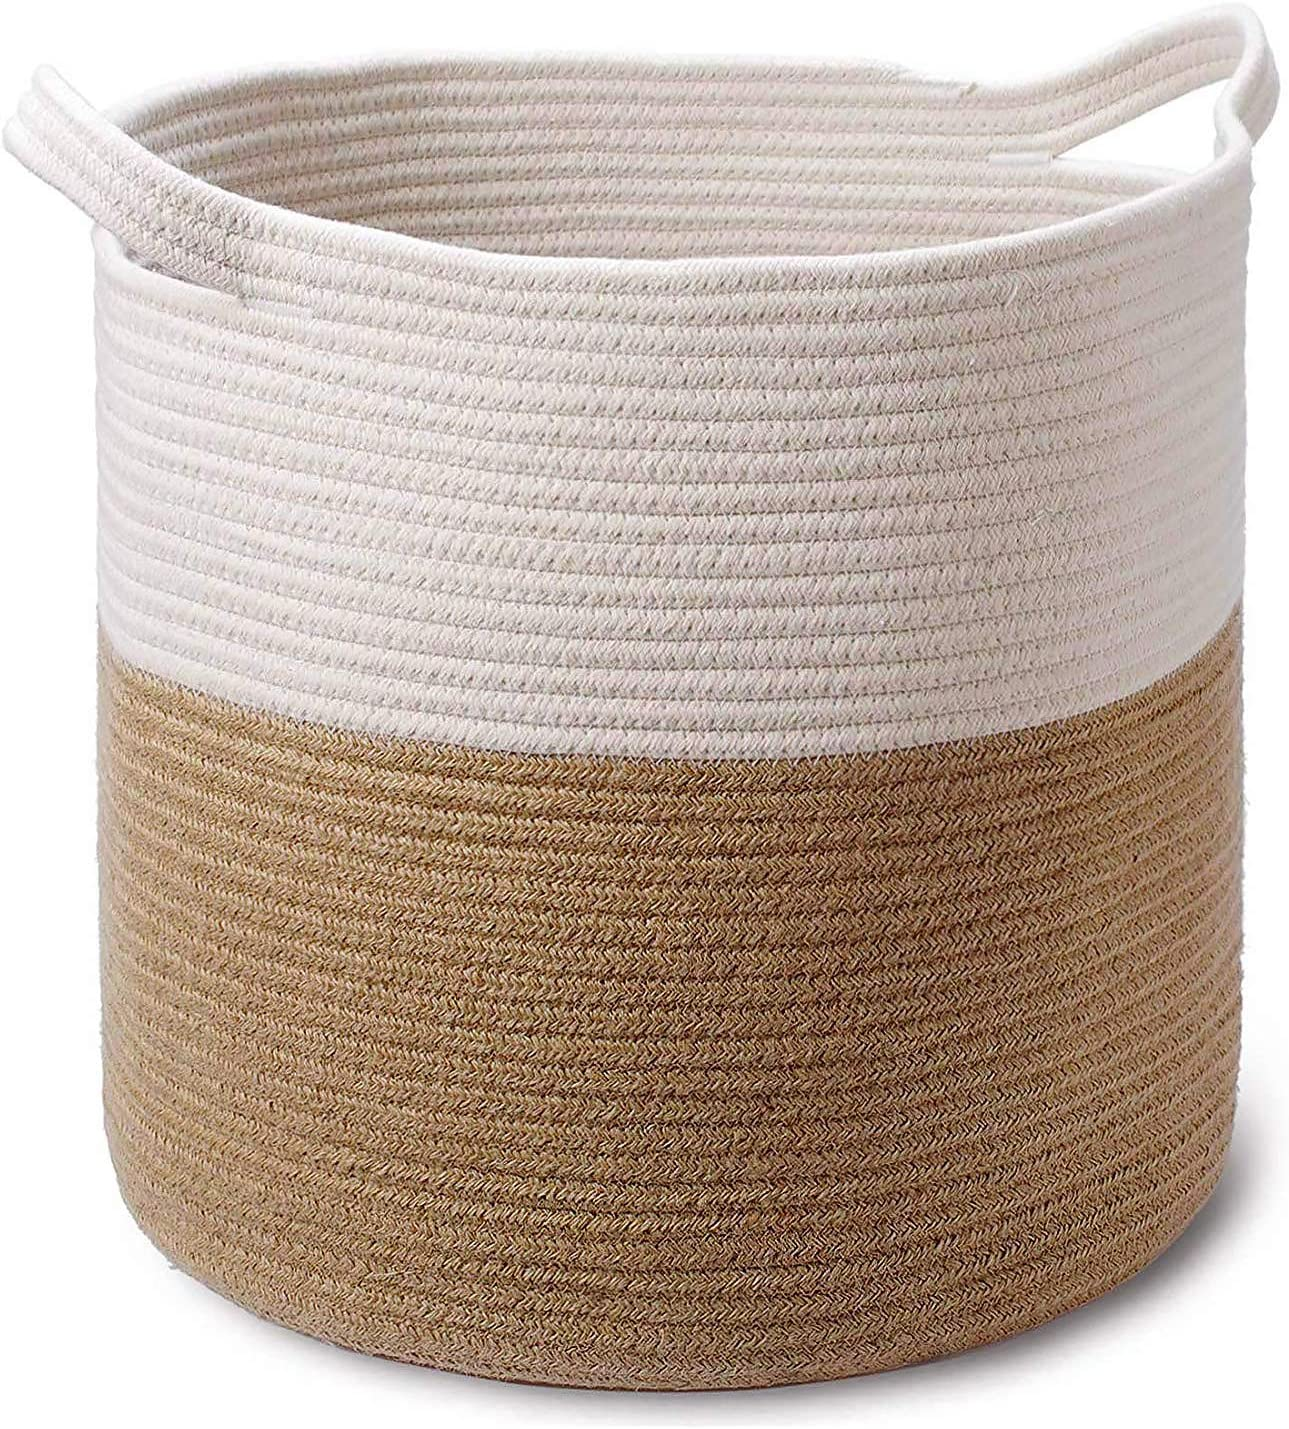 Large Jute Cotton Coiled Rope Basket - 15 x 15 x 16 Inch - Decorative Woven Storage Basket Laundry Hamper for Sofa Throws, Pillows, Toys, Clothes, Towels, Shoes